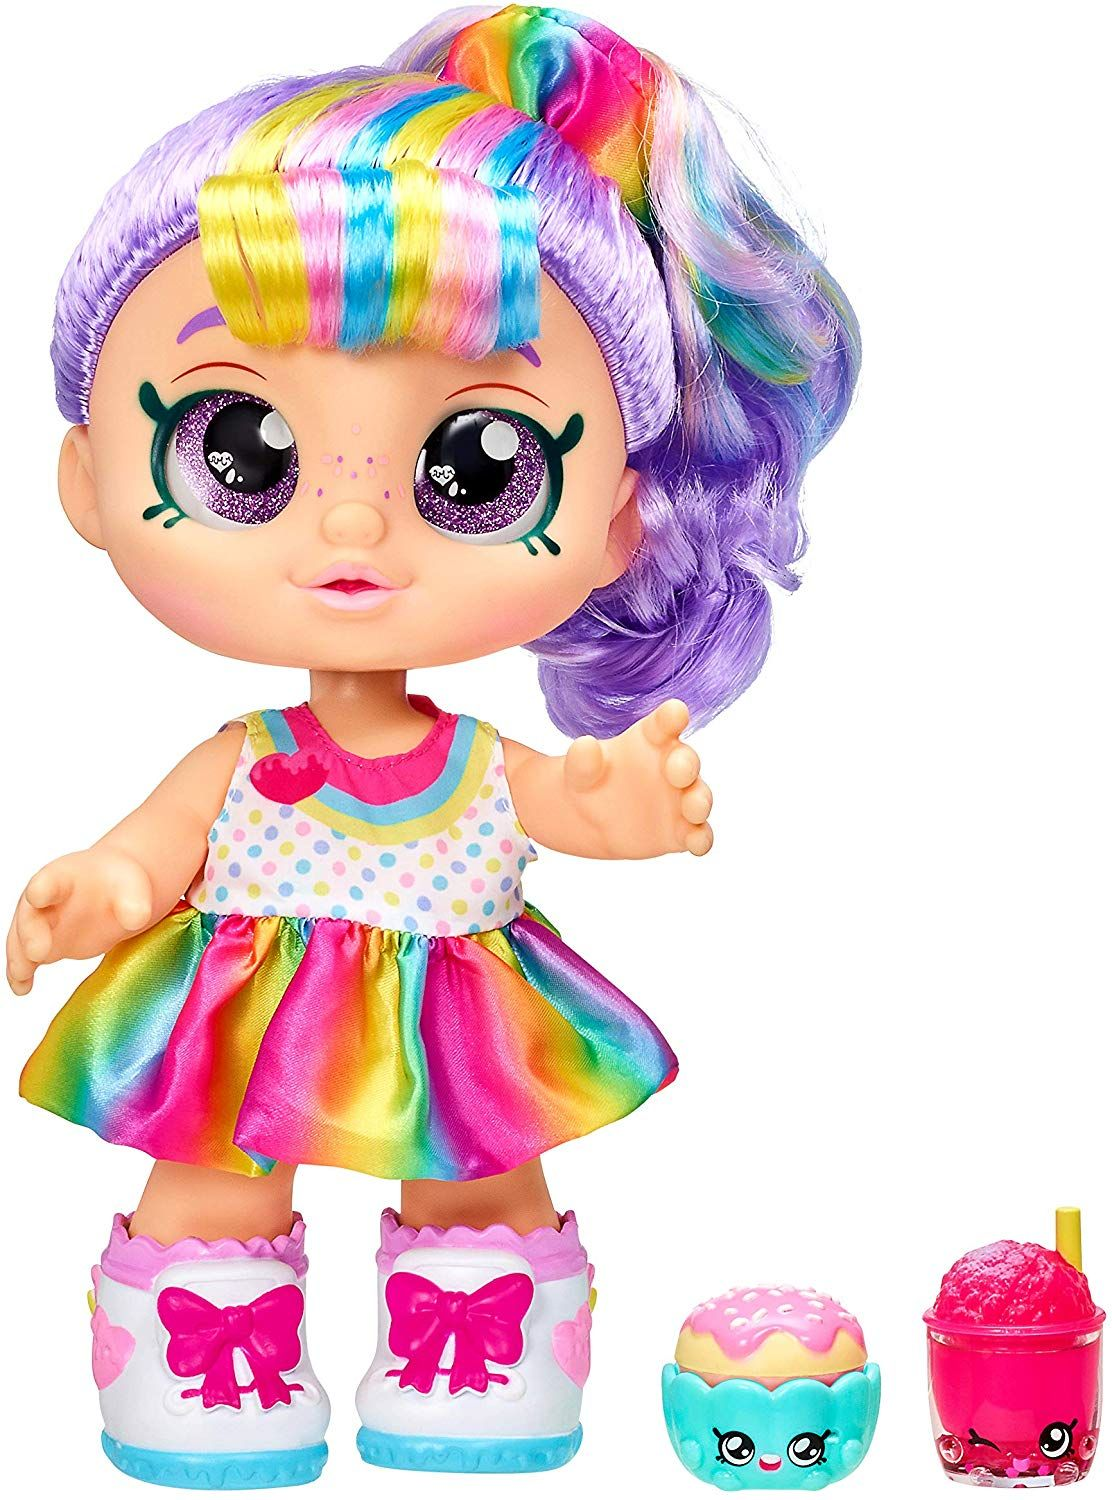 43 Best Toys 2020 – New Girls & Boys Approved Toy Trends in 2020